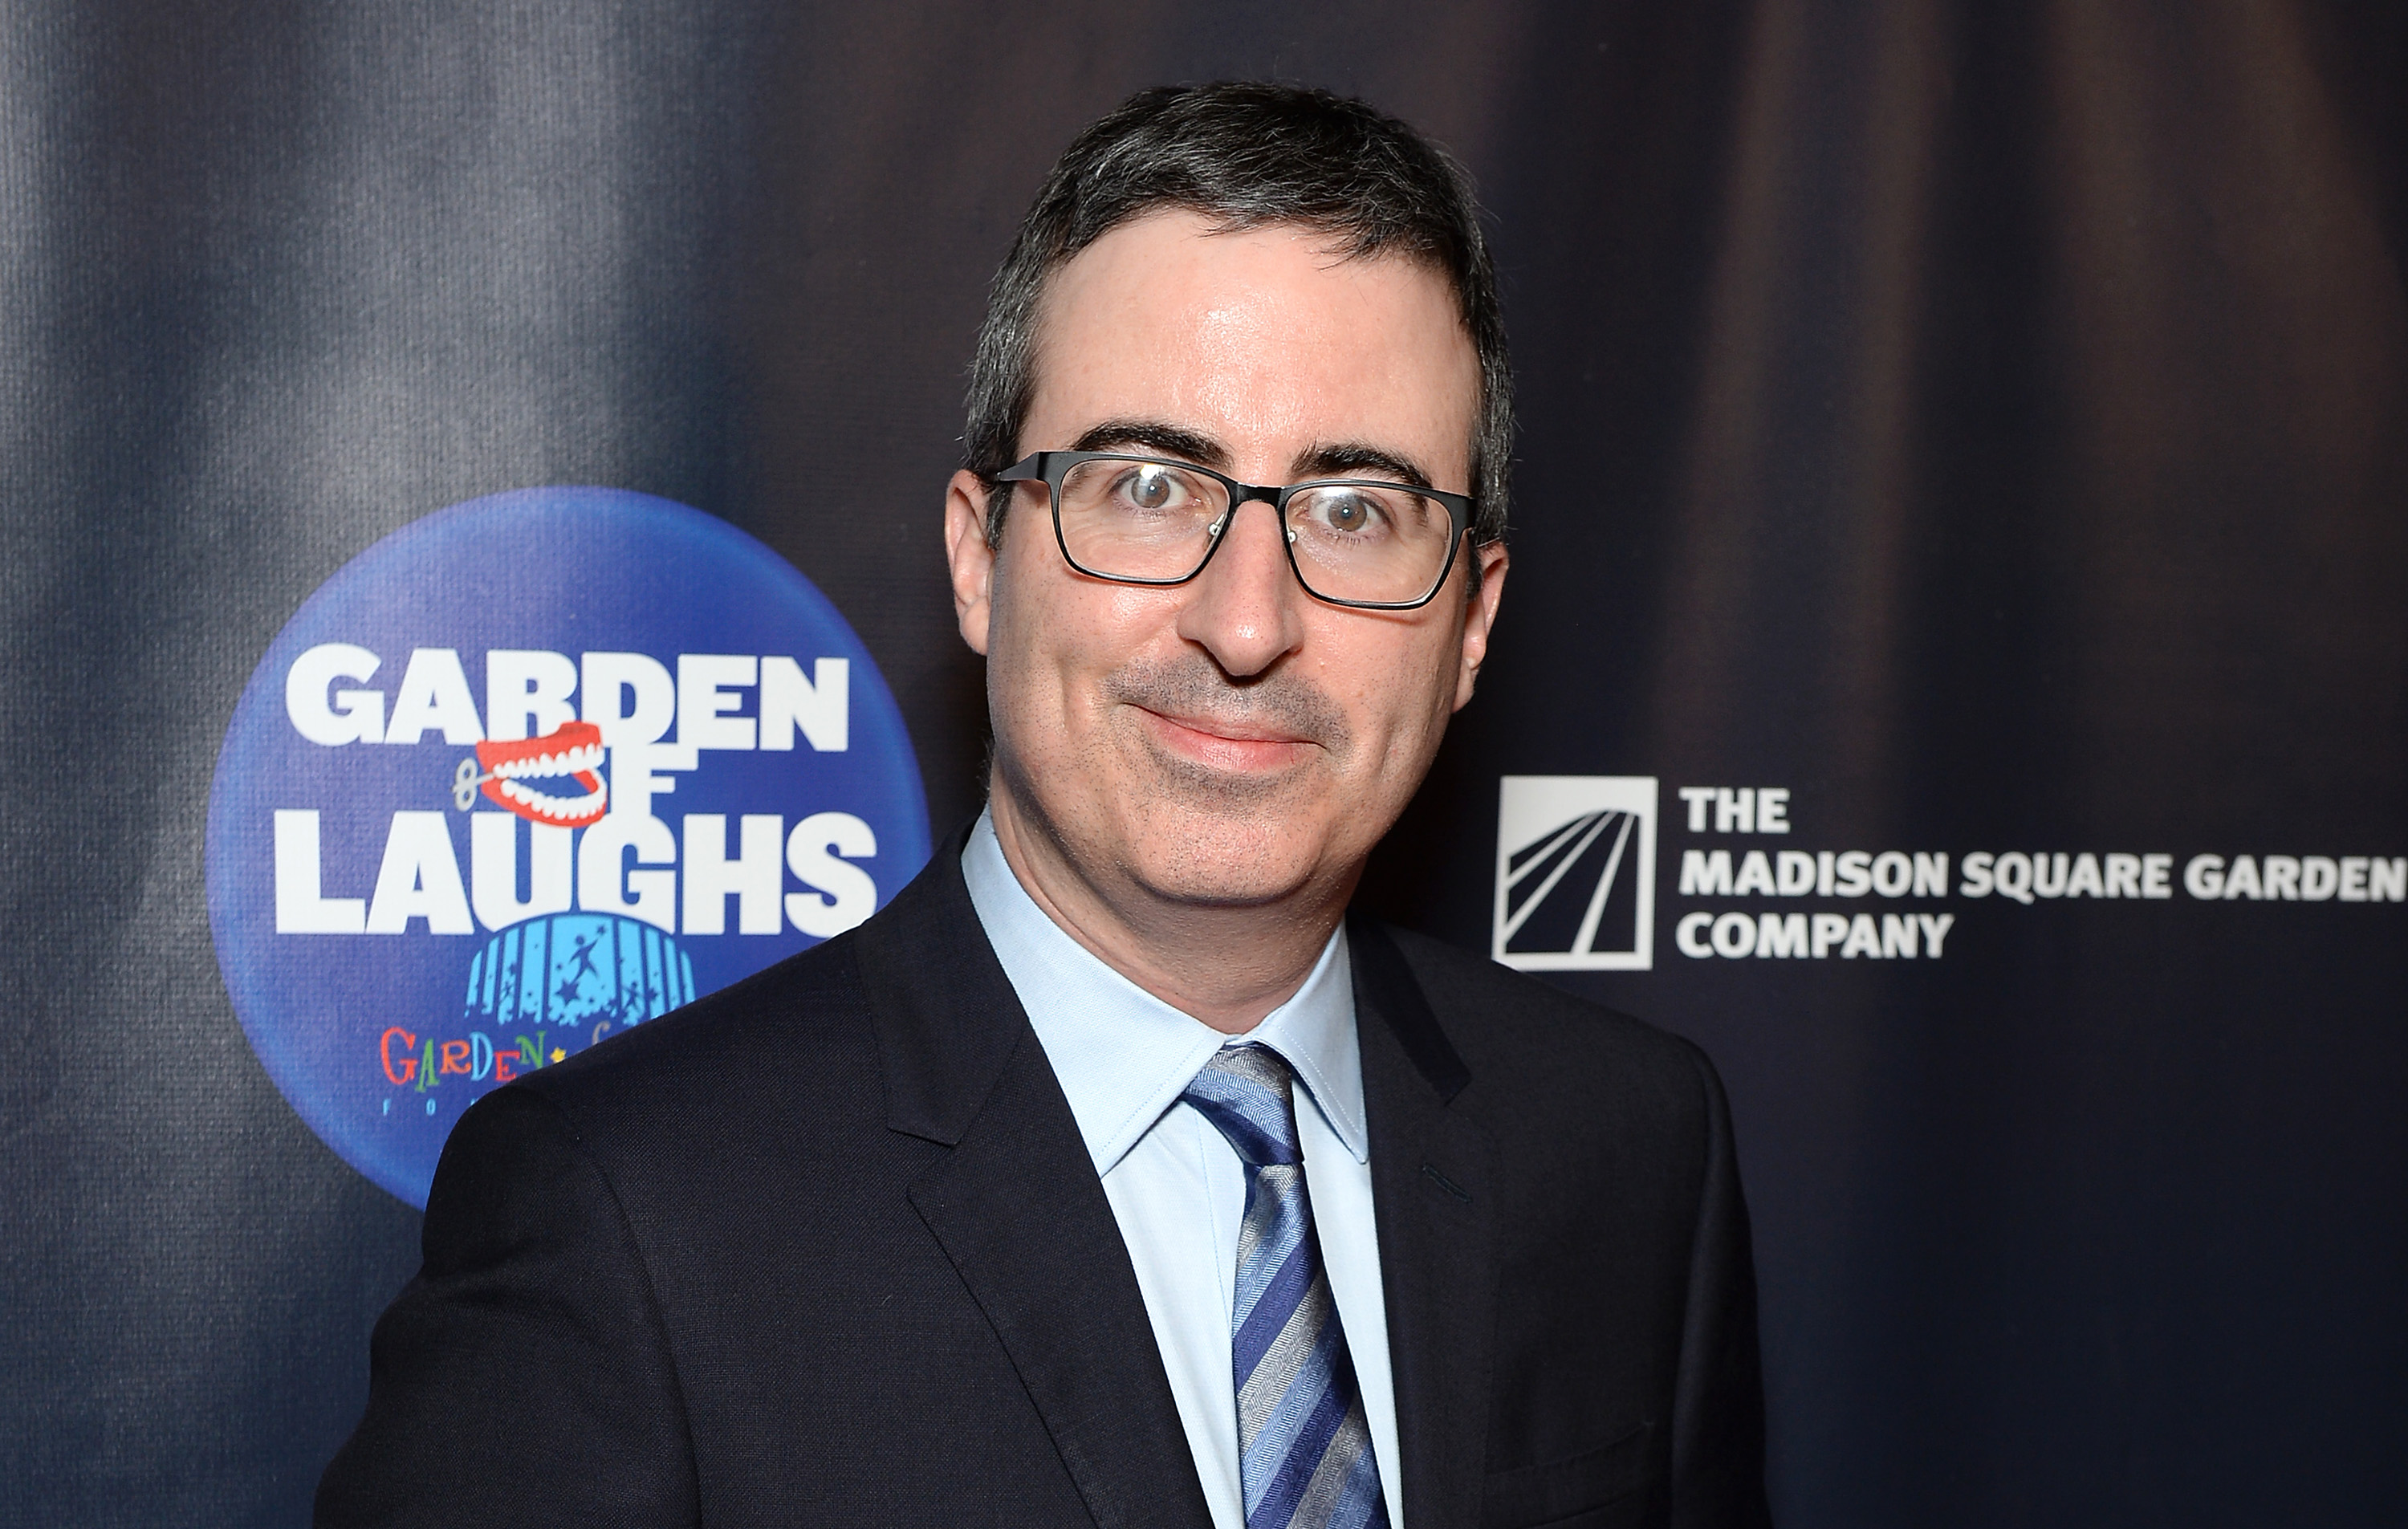 John Oliver attends the 2017 Garden of Laughs at Madison Square Garden on March 28, 2017 in New York City.